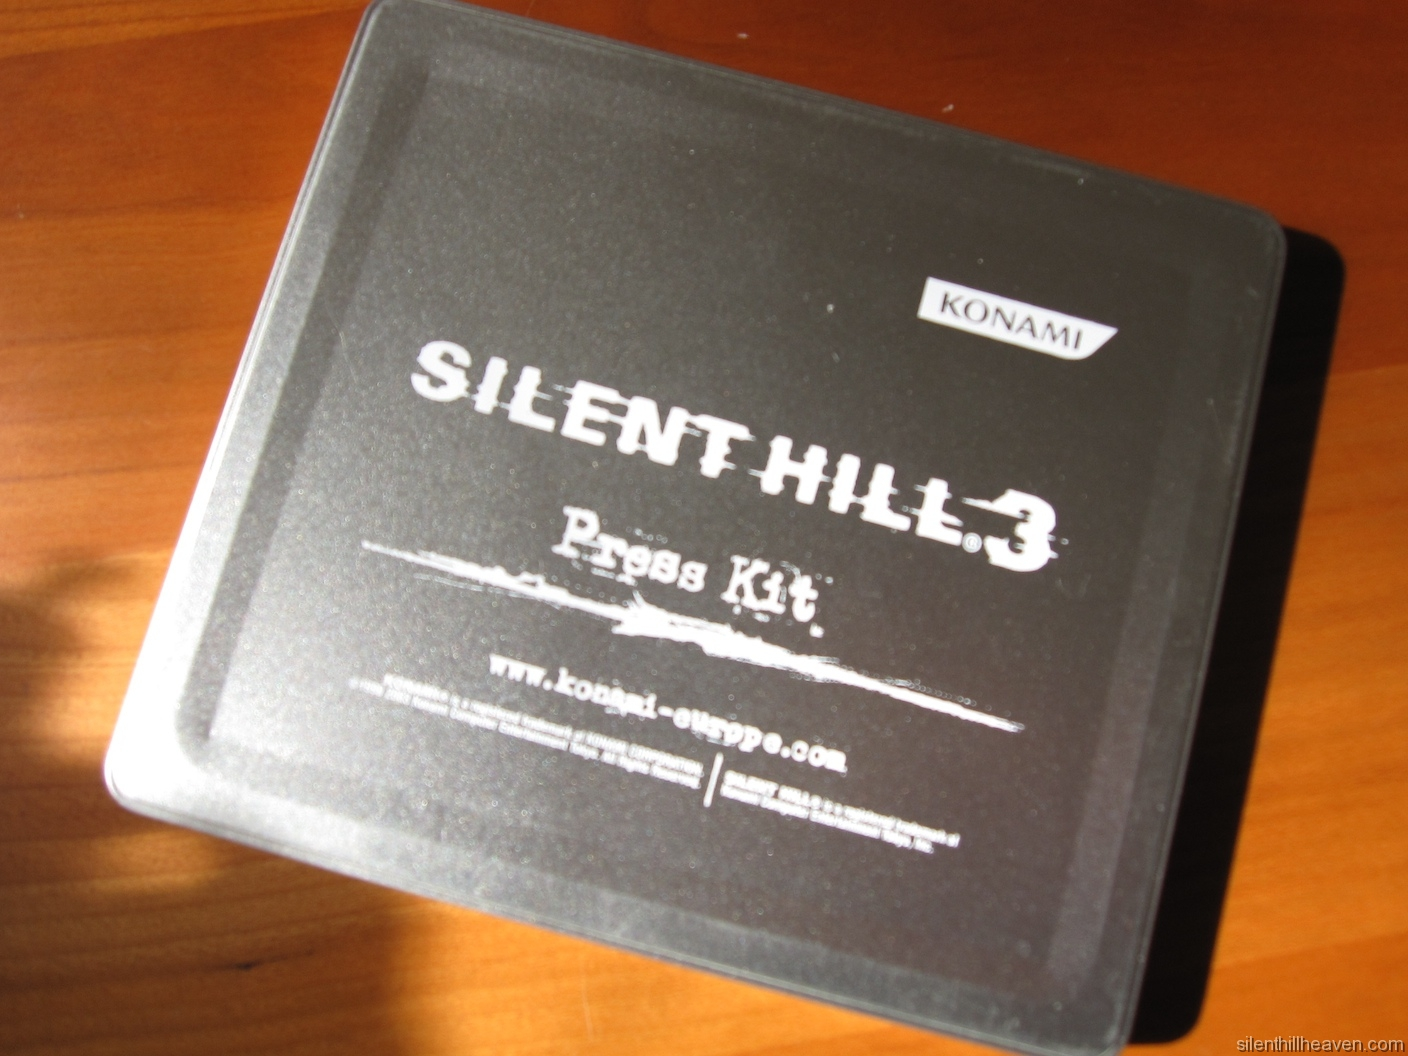 Silent Hill 3 Press Kit